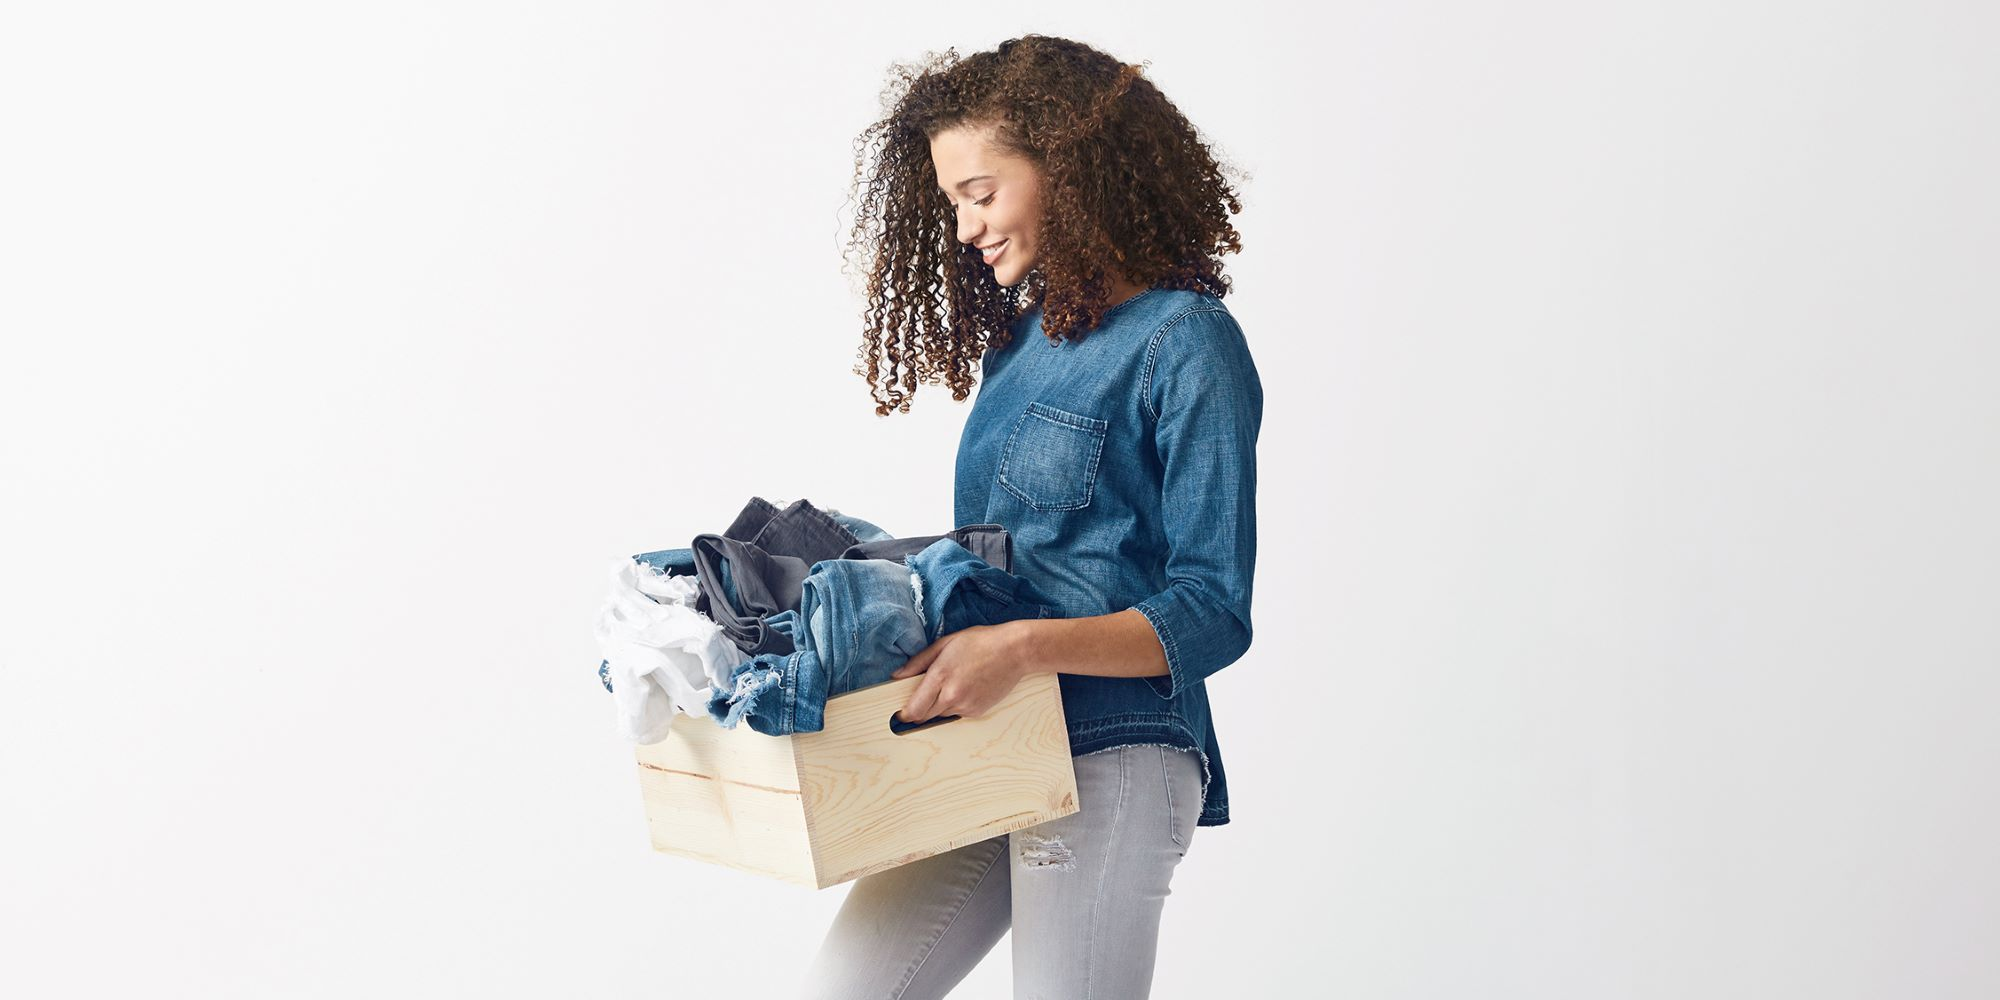 Consumers can divert used and unwanted apparel, denim and textiles from the landfill by recycling them in the Blue Jeans Go Green campaign.